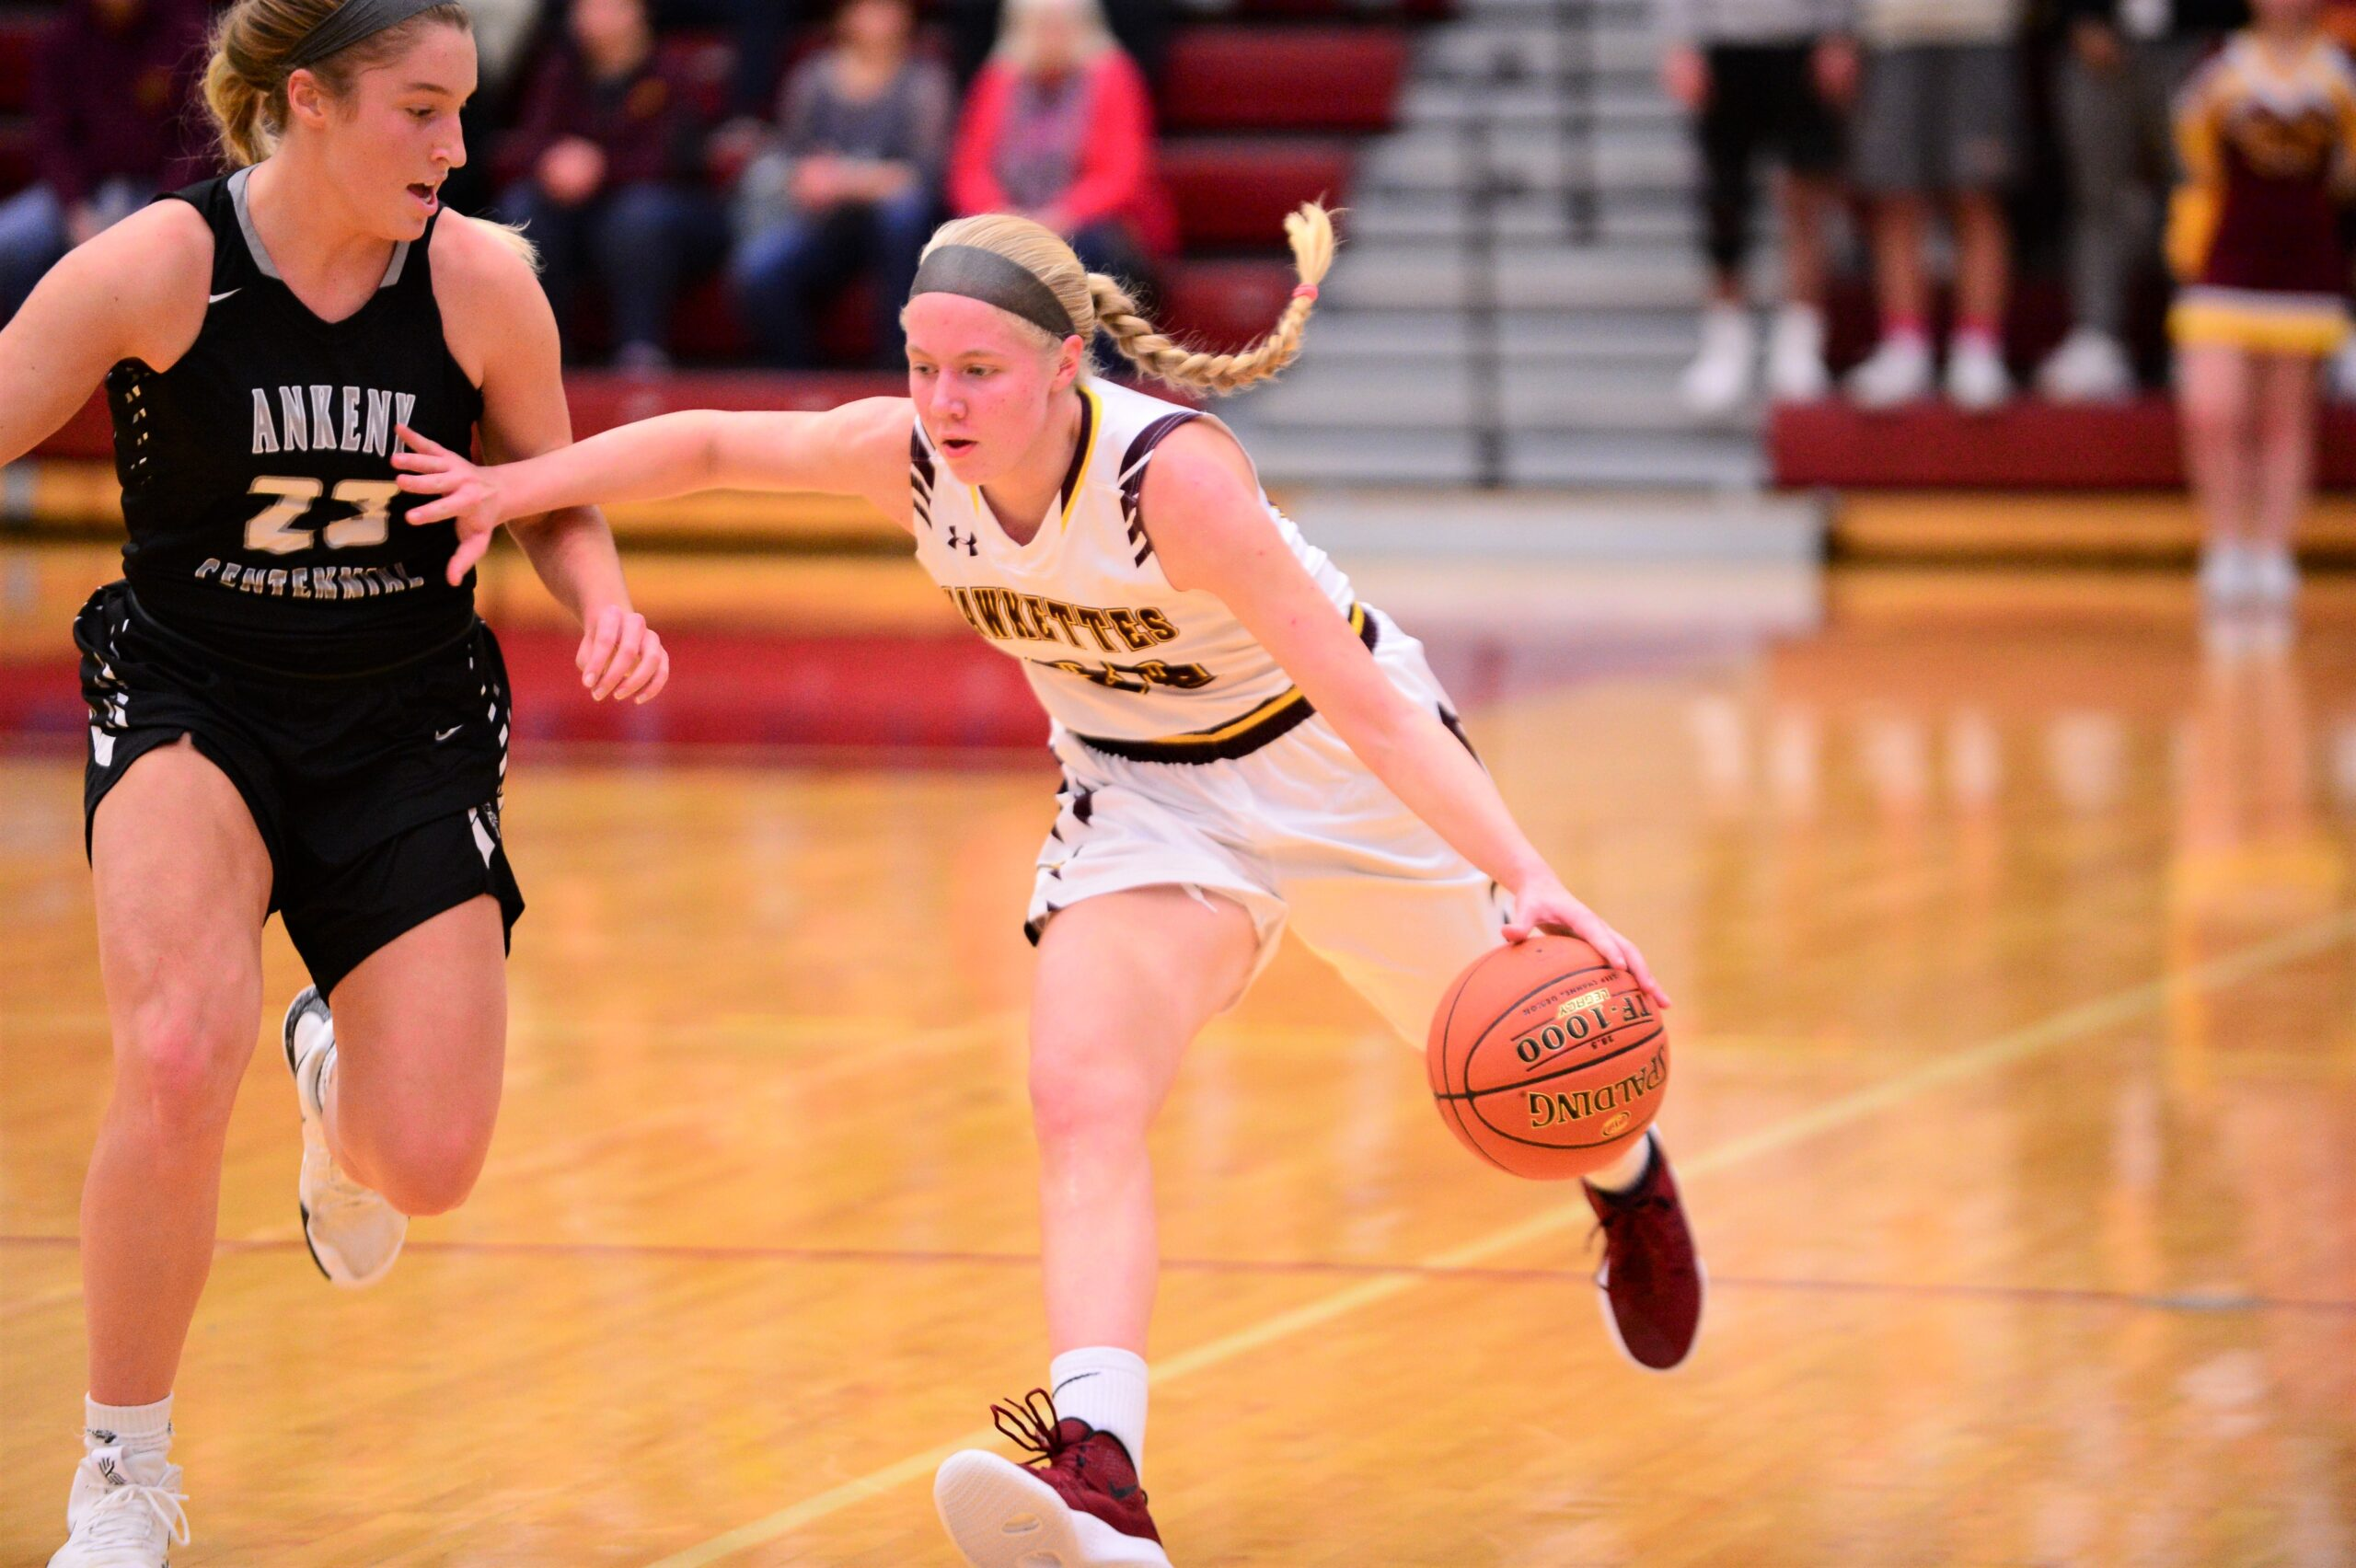 'At NSU I truly felt at home!': Ankeny's Johnson commits to play for D2 Wolves